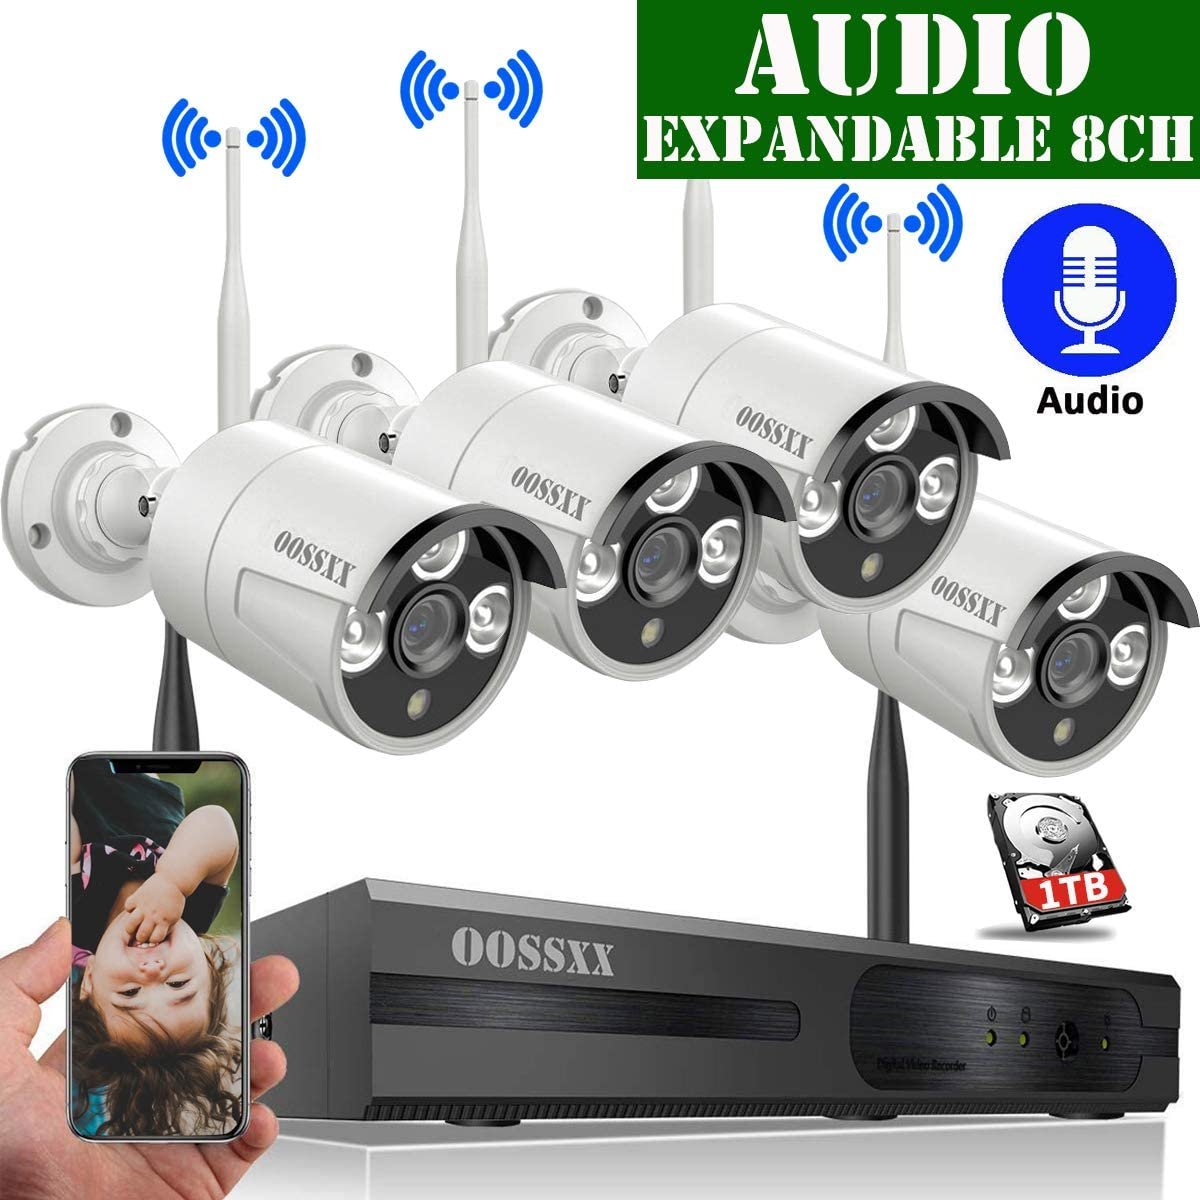 【Expandable 8CH&Audio】 Wireless Video Security Surveillance Camera System with Hard Drive,OOSSXX 8CH HD 1080P Home NVR/DVR Kit,4Pcs 1080P Wireless Outdoor IP Cameras with One-Way Audio,P2P,App